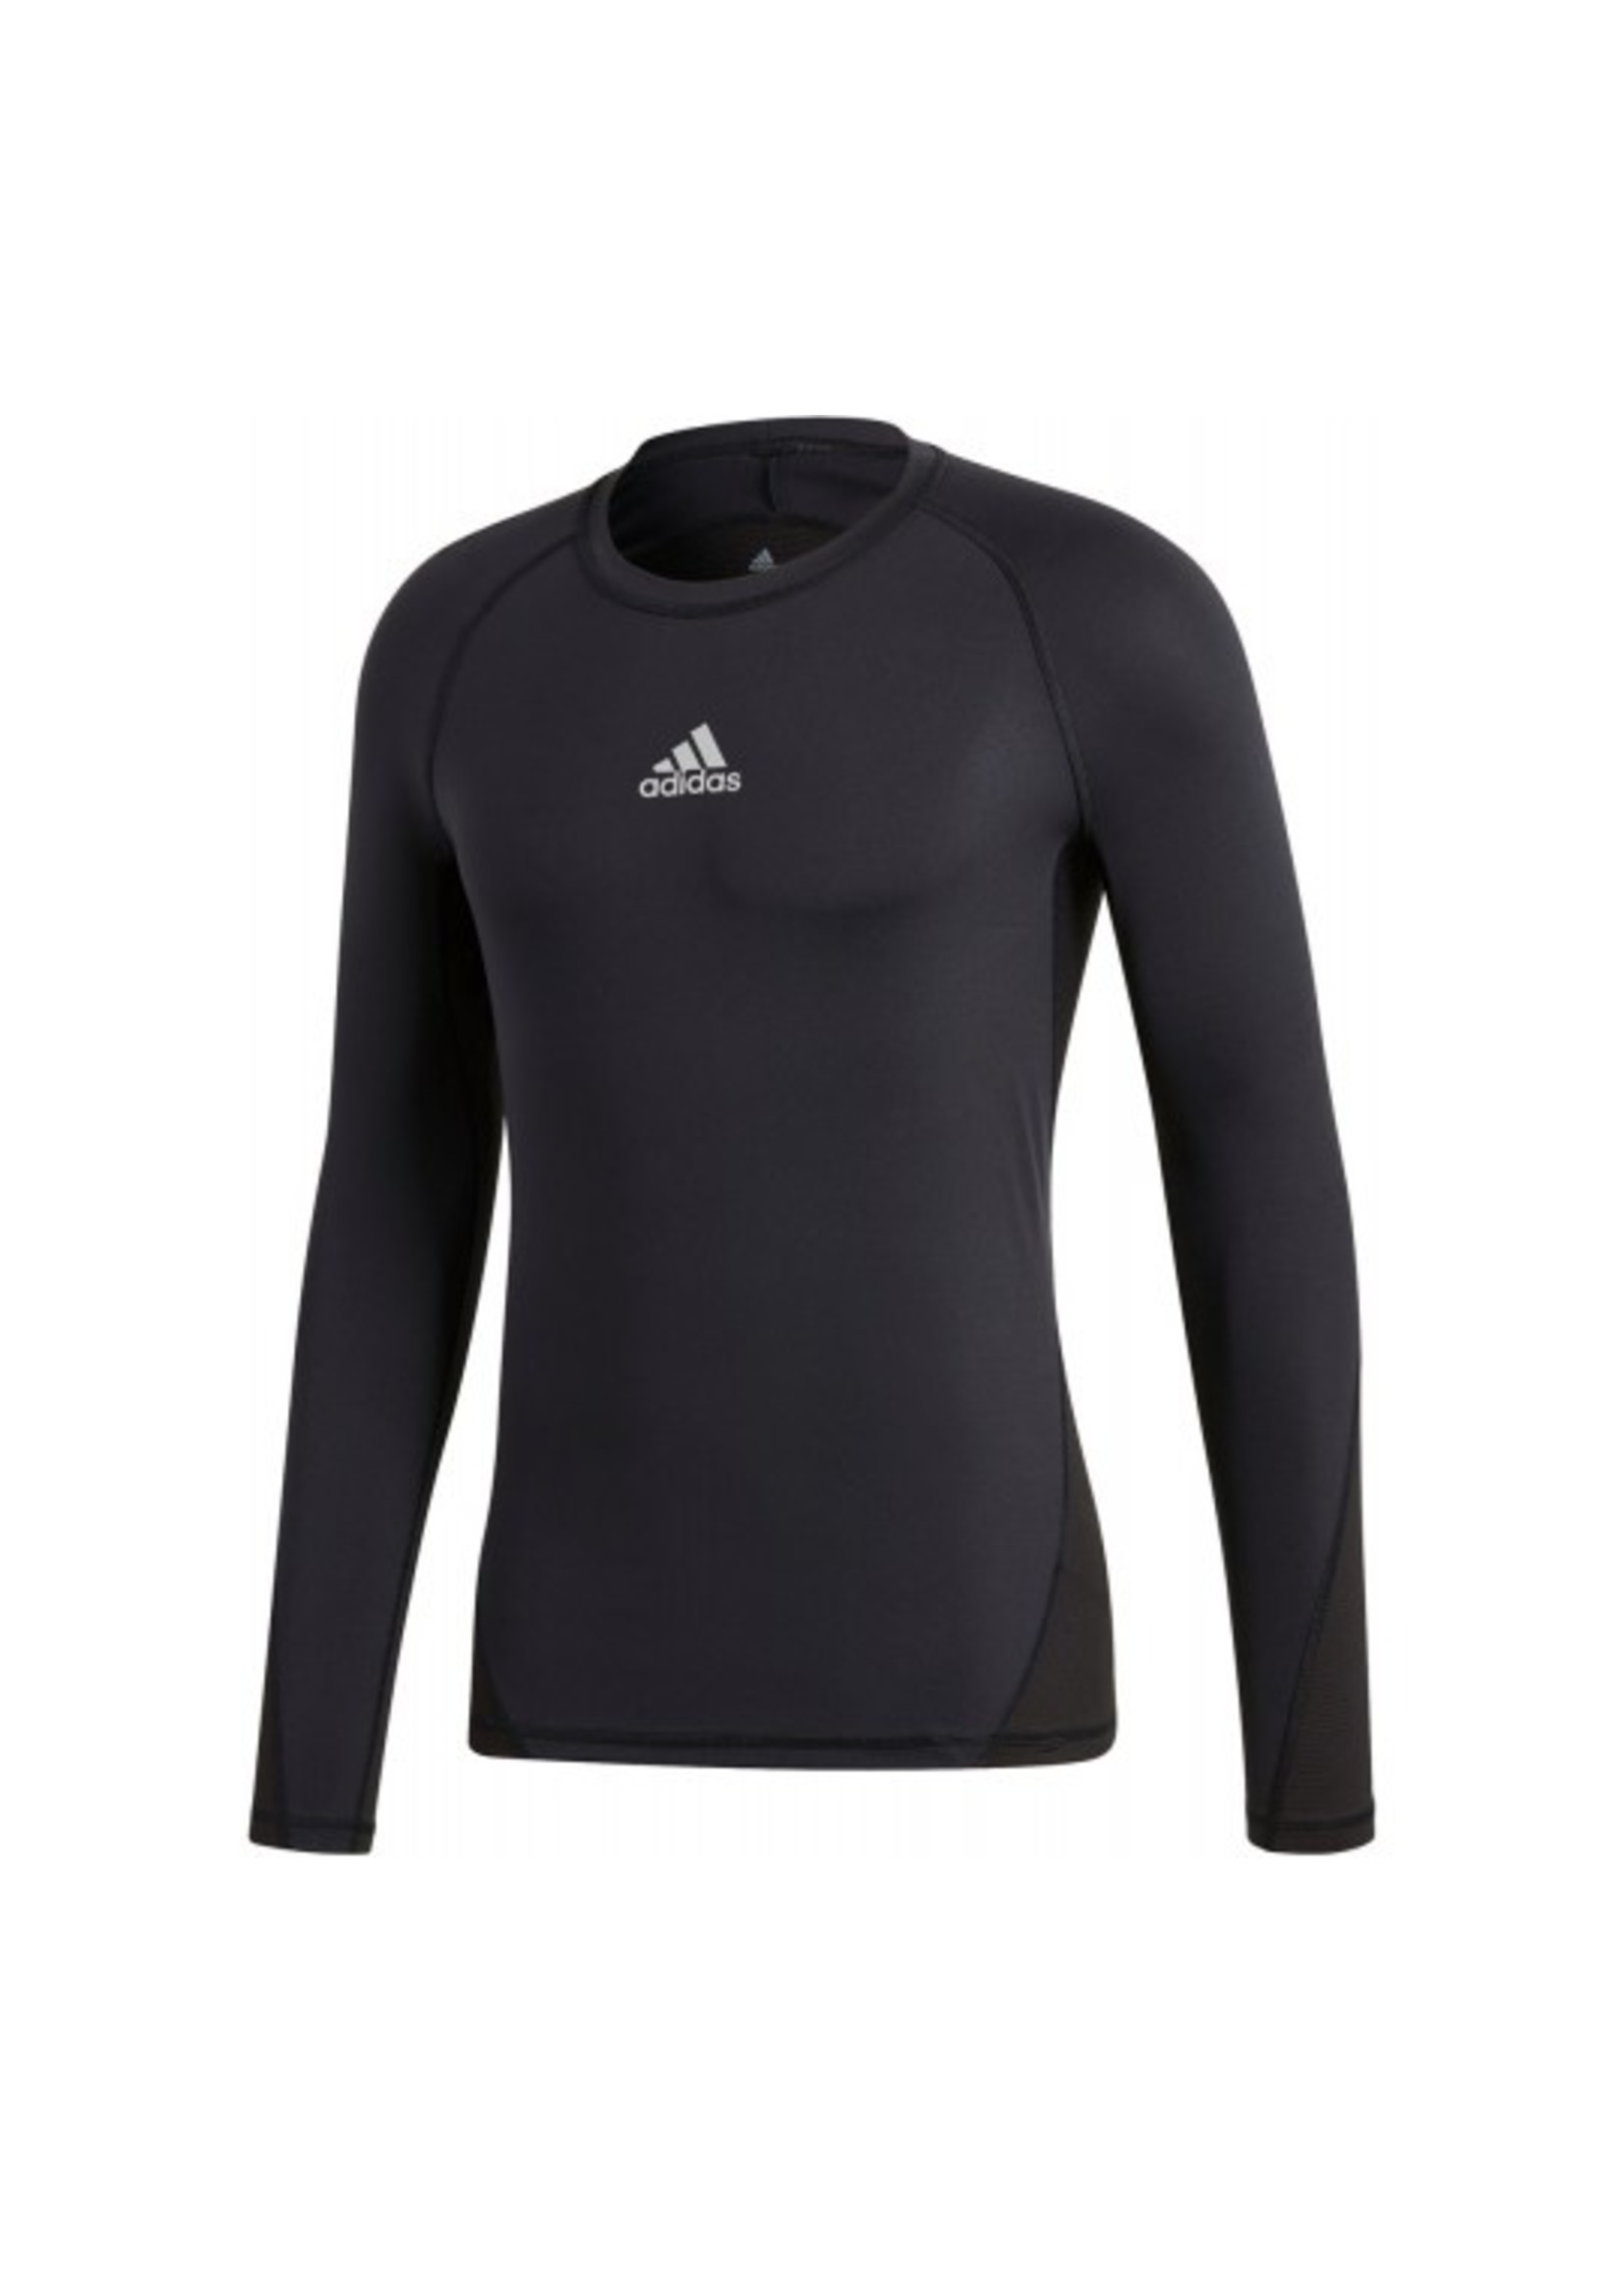 Adidas Compression Black Long Sleeve Youth